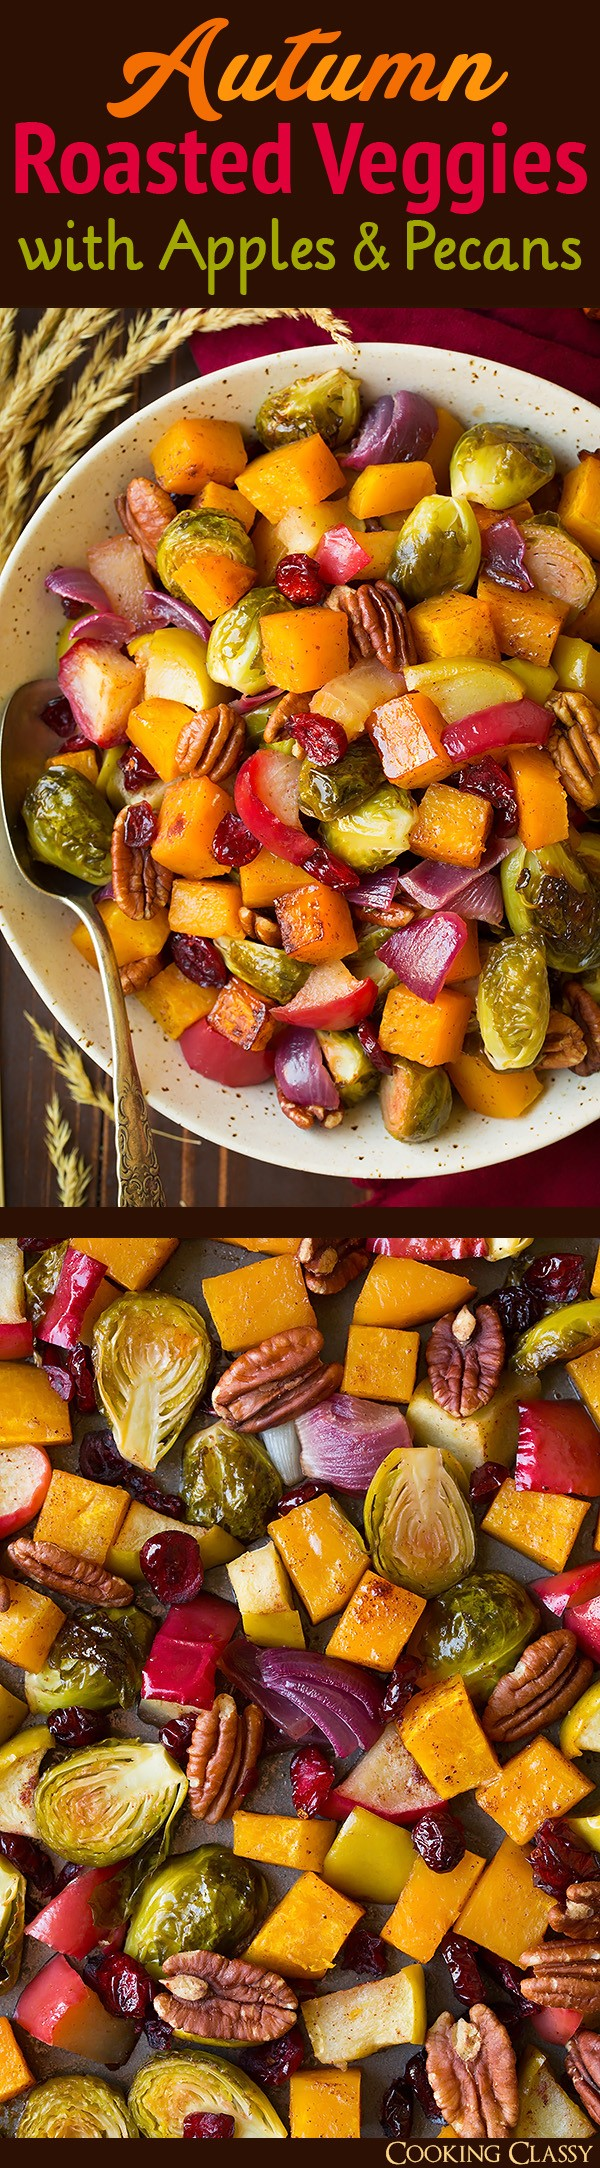 Get the recipe Roasted Veggies with Apples and Pecans @recipes_to_go